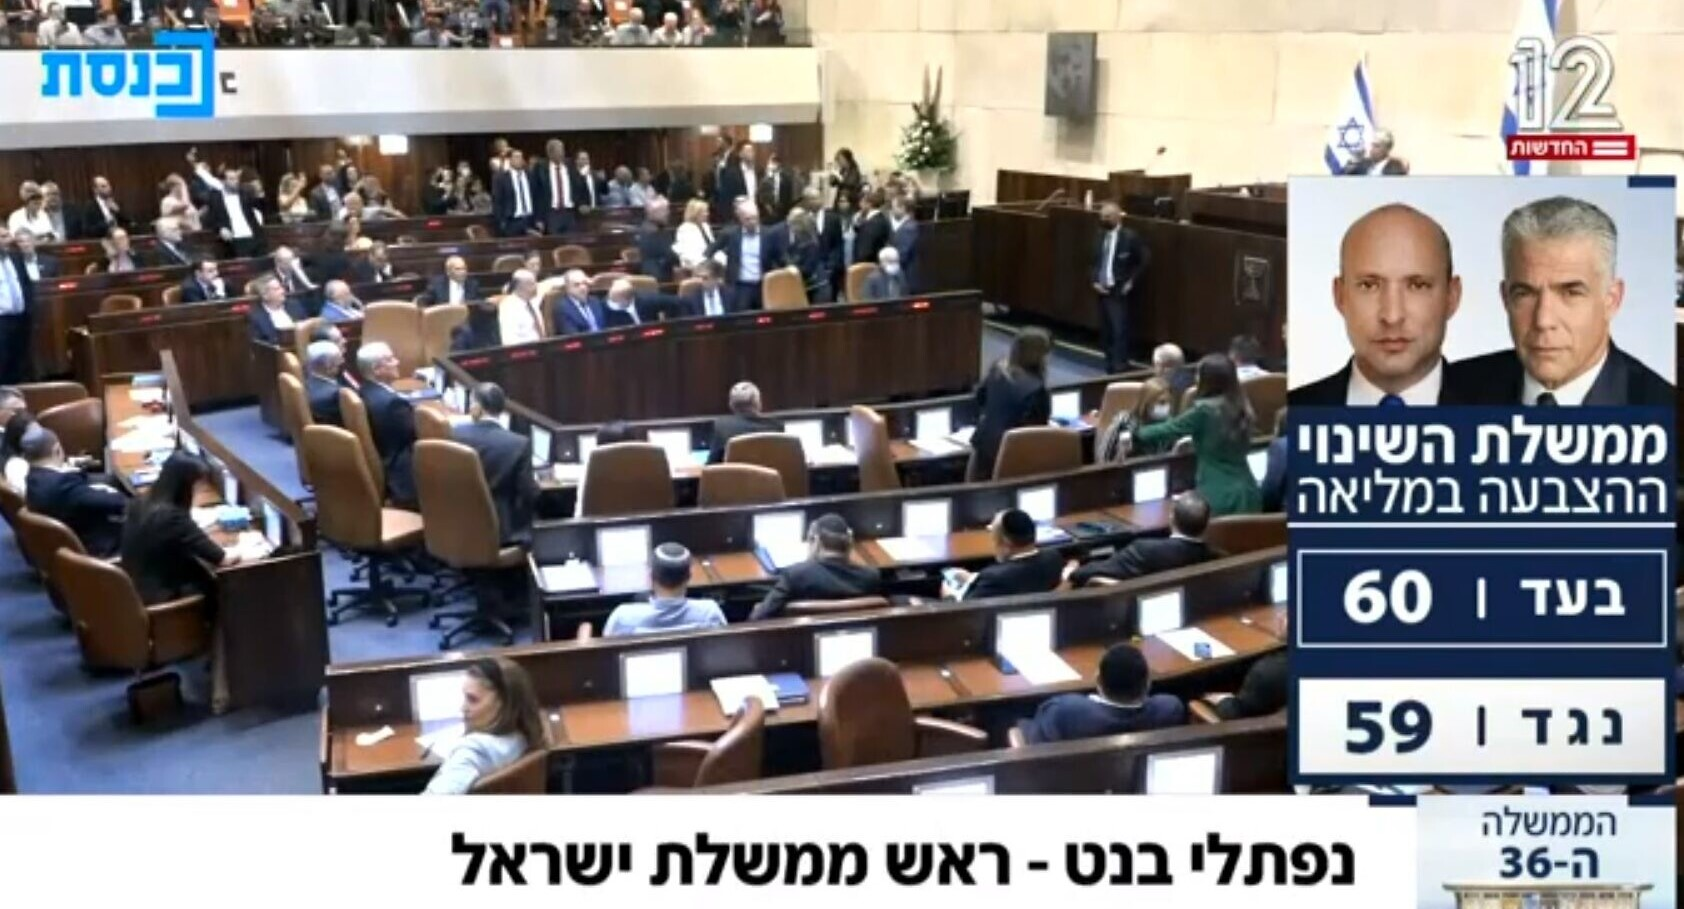 """The results for the vote for the new Bennett-Lapid """"change"""" government in the Knesset 60 in favor, 59 against, making Naftali Bennett Israel's Prime Minister,"""" Sunday night, June 13, 2021"""